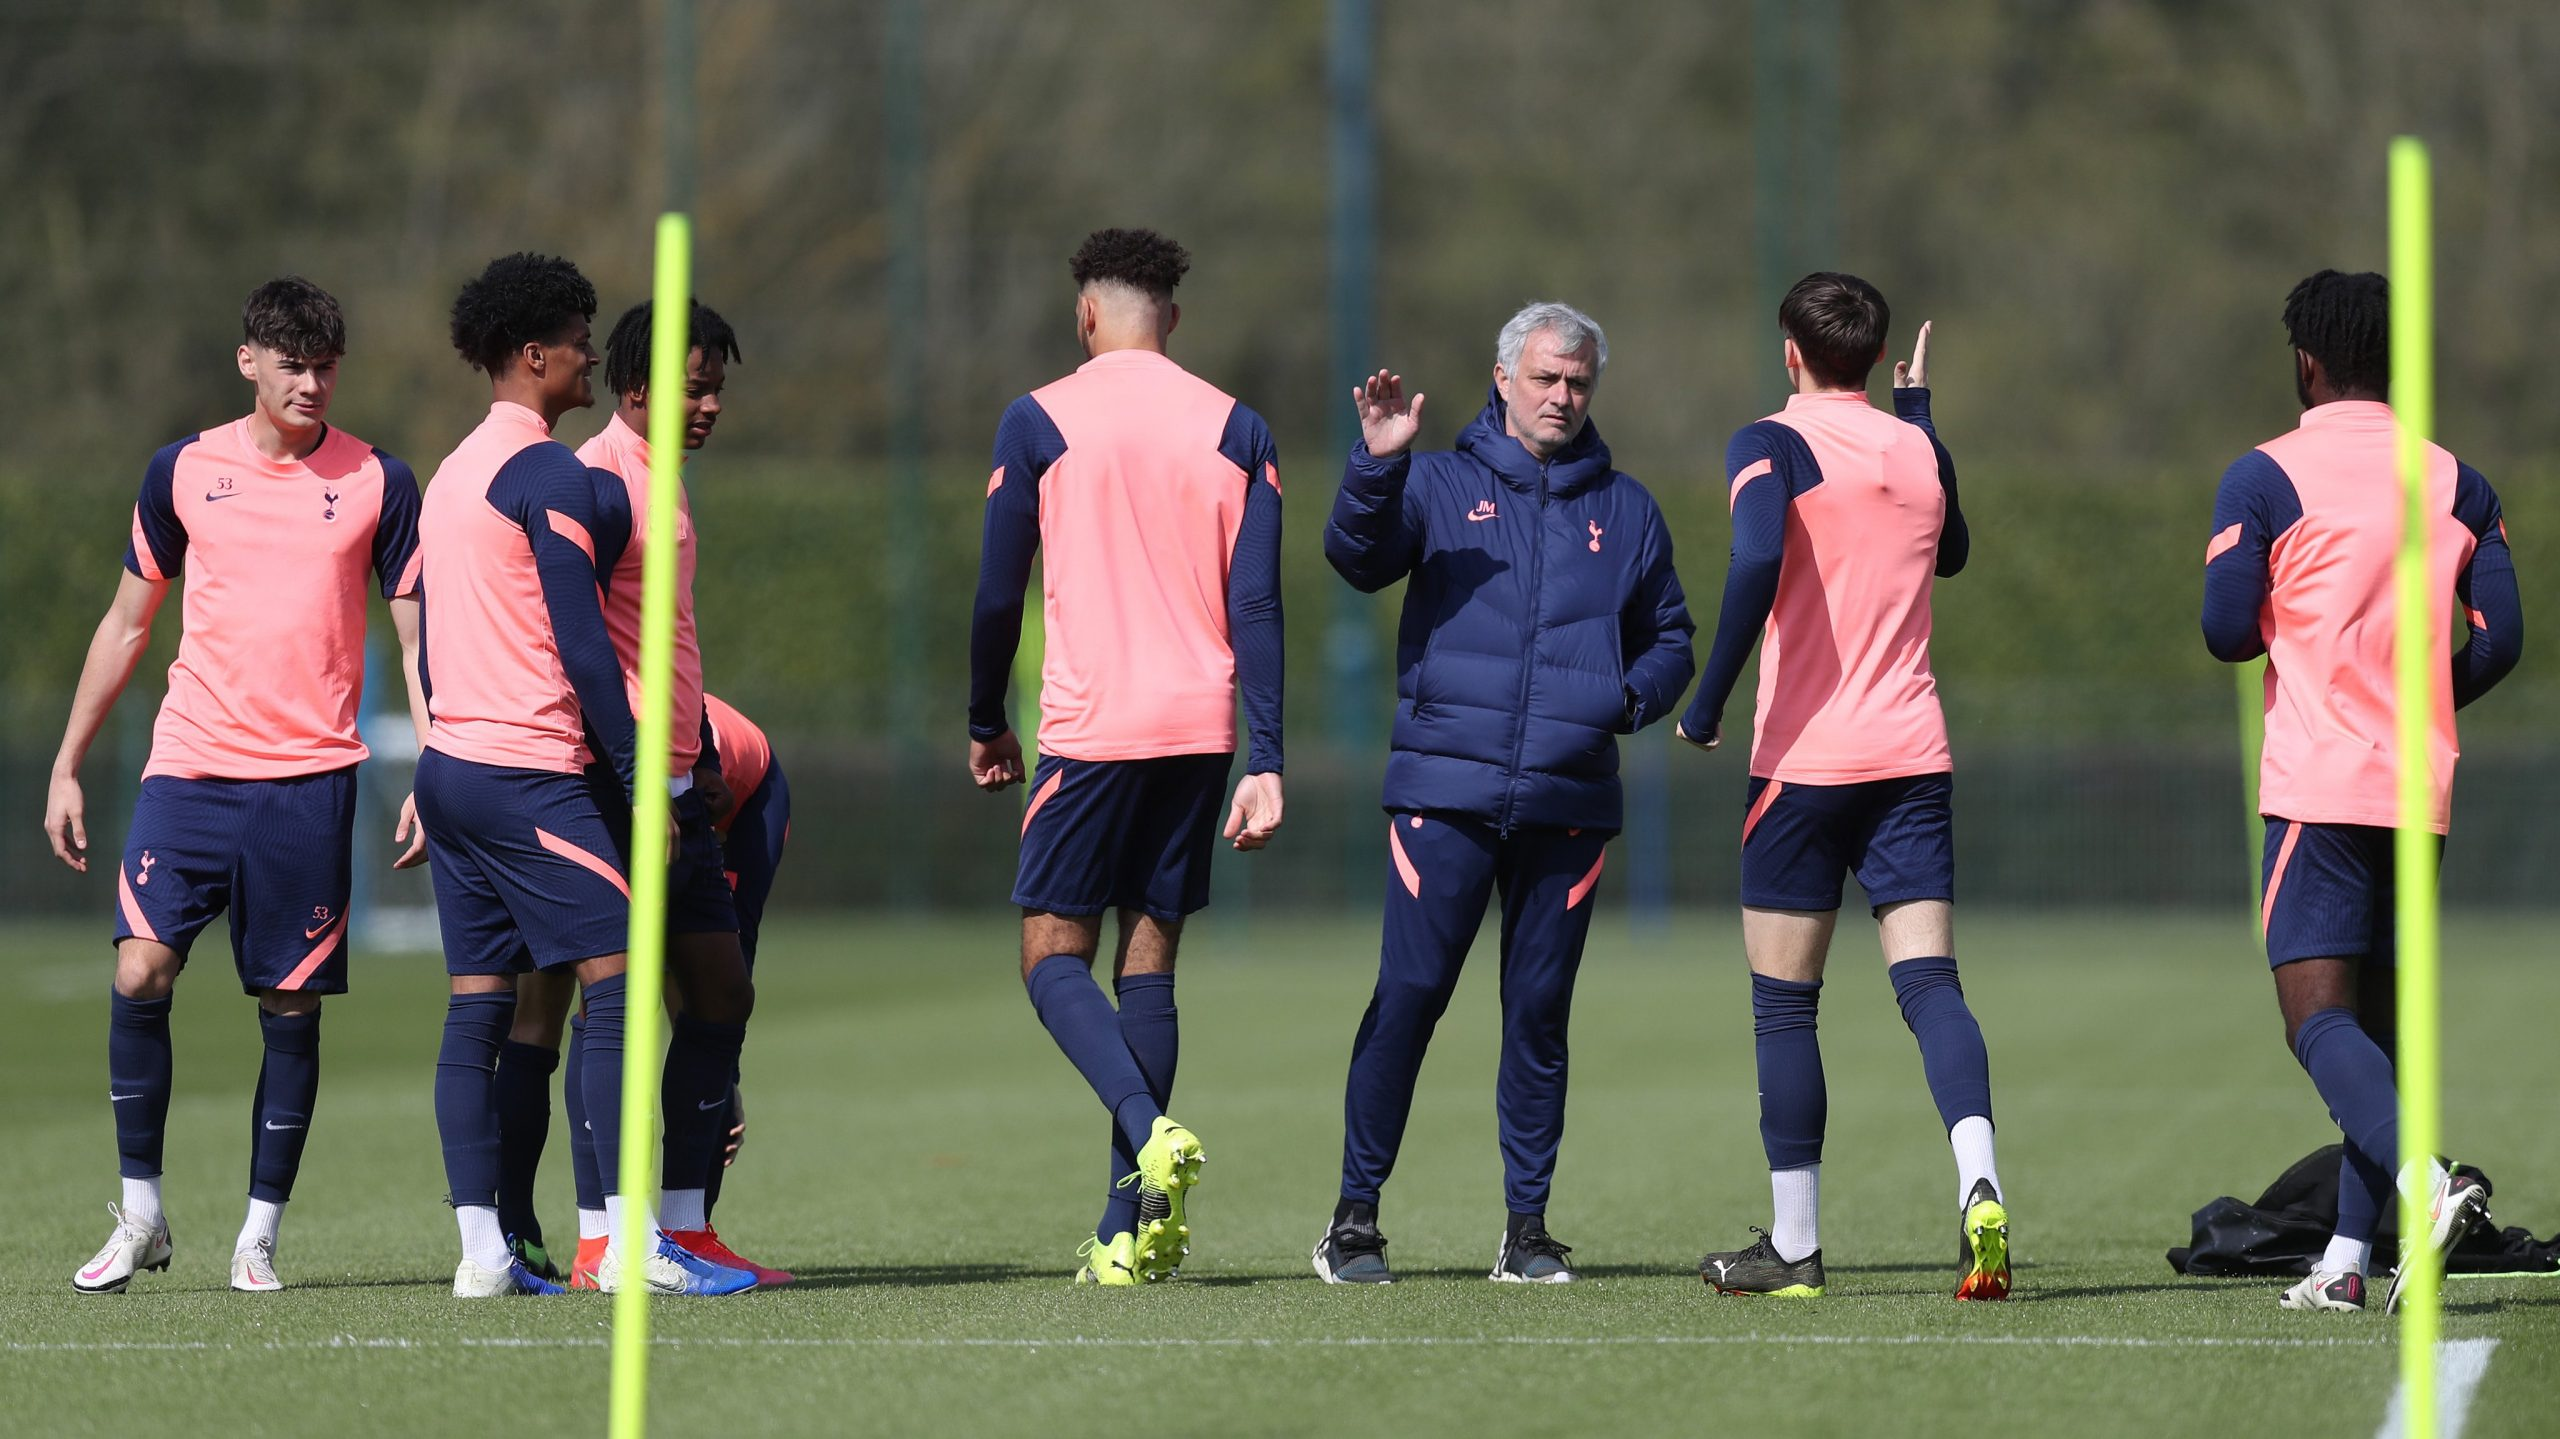 Jose Mourinho has given youth a chance at Spurs